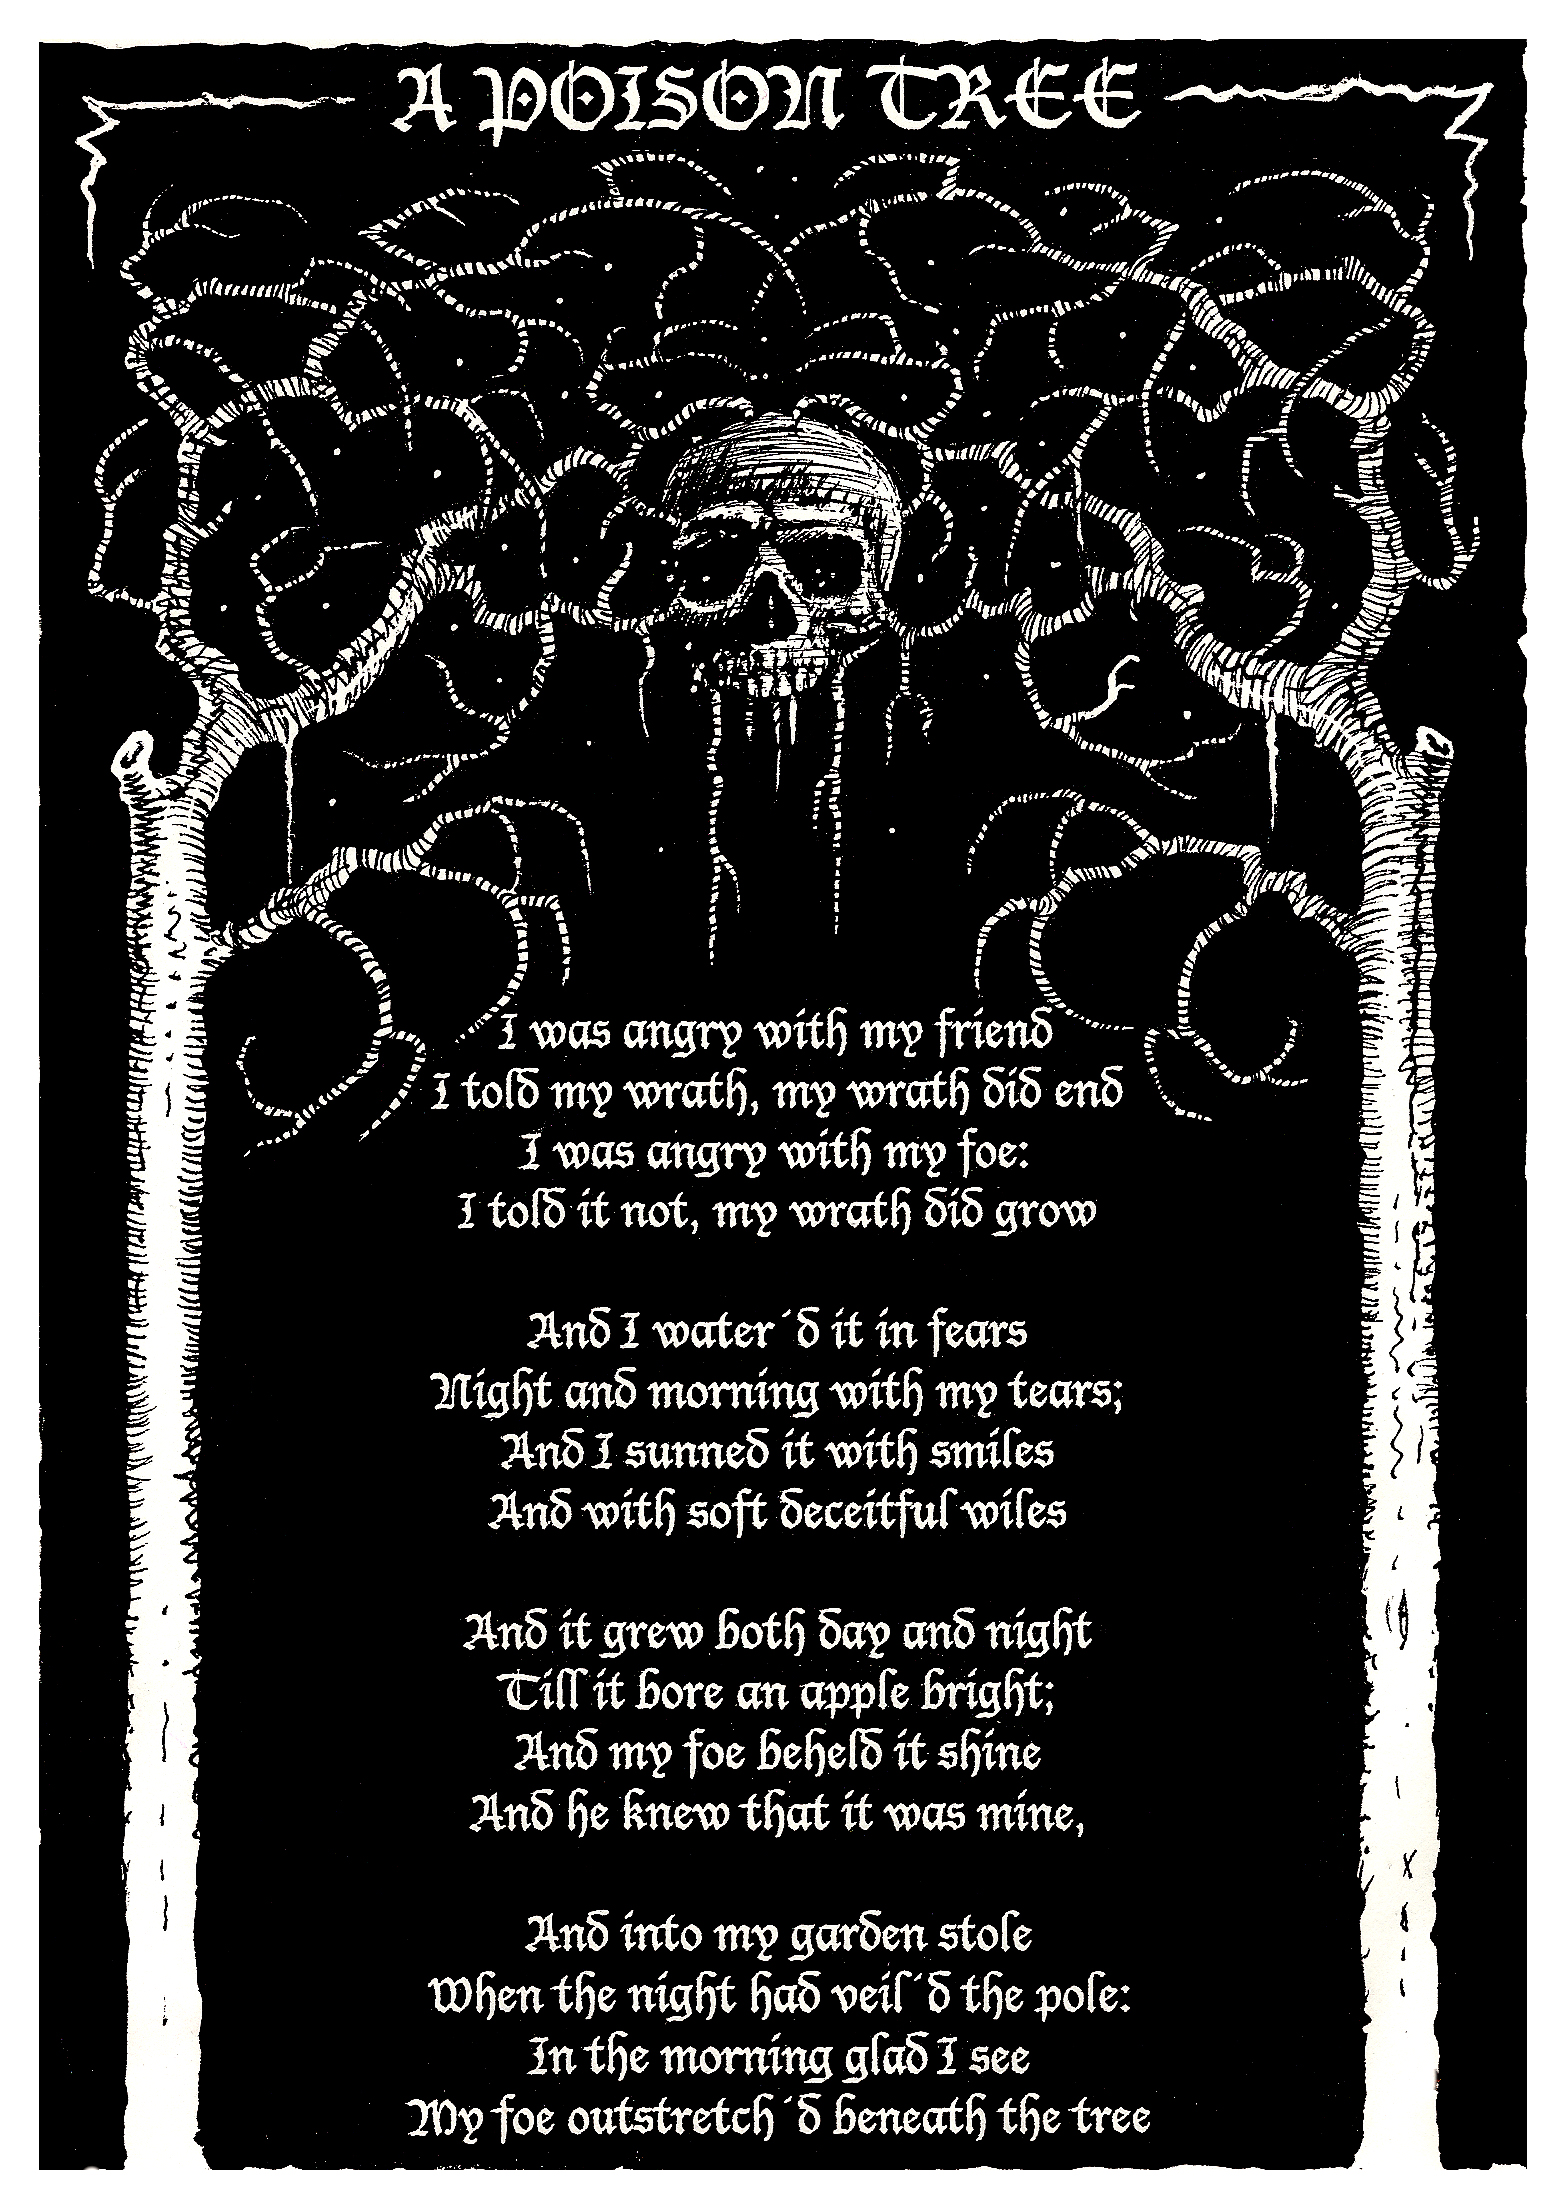 growing anger in a poison tree by william blake William blake's a poison tree can be said to be a warning for the consequences just as the tree is a metaphor for growing anger it is referring to giving the.